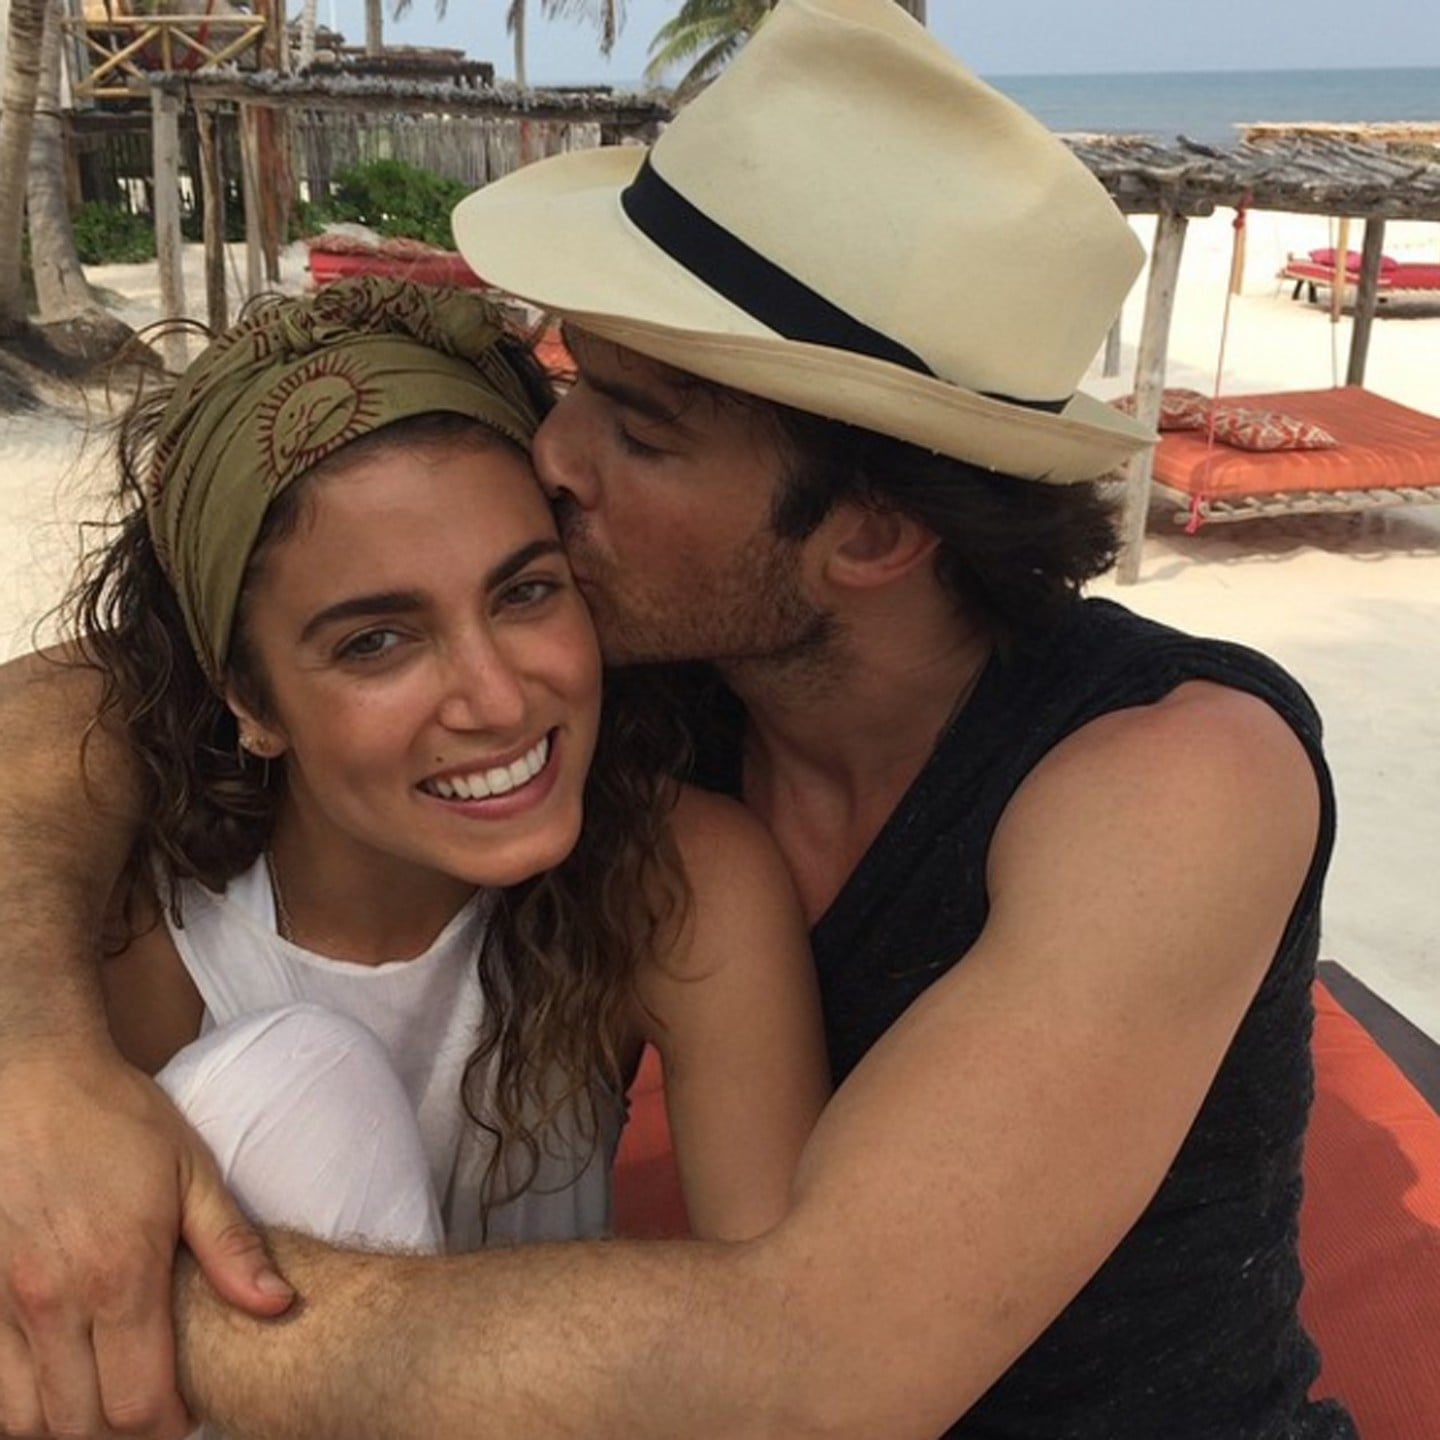 Ian somerhalder and nikki reeds cute instagram posts popsugar ian somerhalder and nikki reeds cute instagram posts popsugar celebrity m4hsunfo